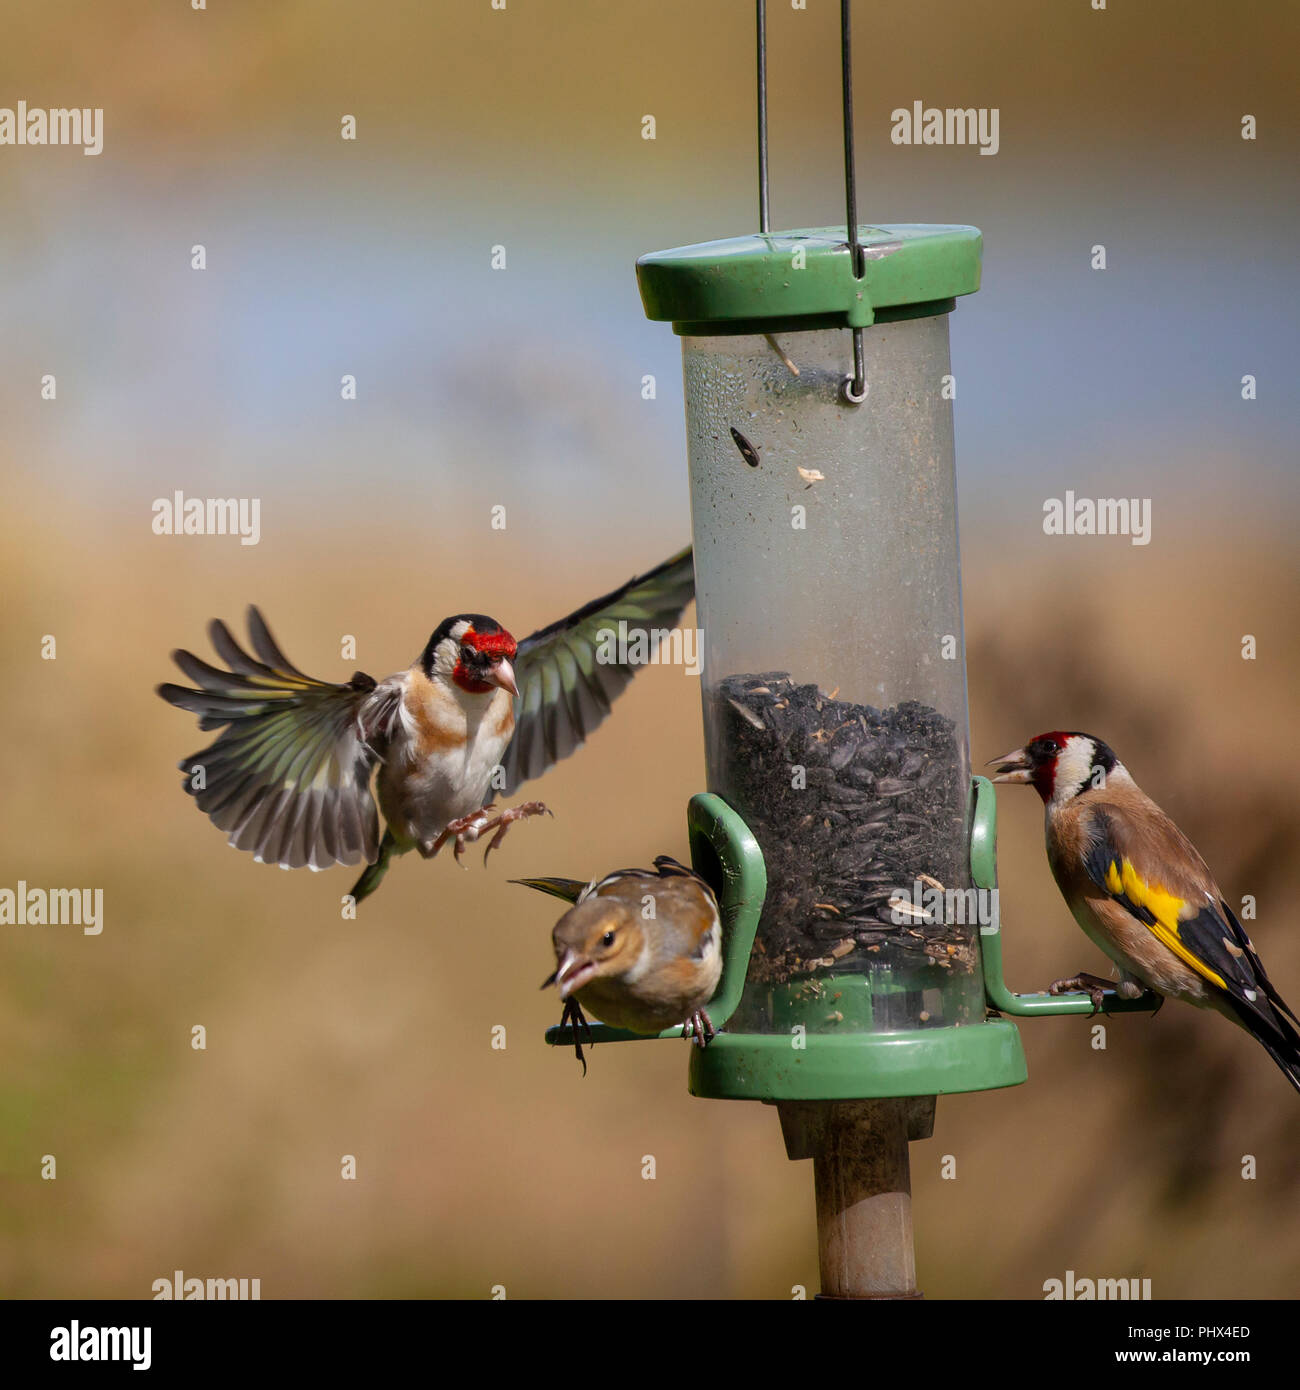 A European Goldfinch comes in to a sunflower seed feeder and a Common Chaffinch makes a hasty exit. Another Goldfinch is eating peacefully at the othe - Stock Image